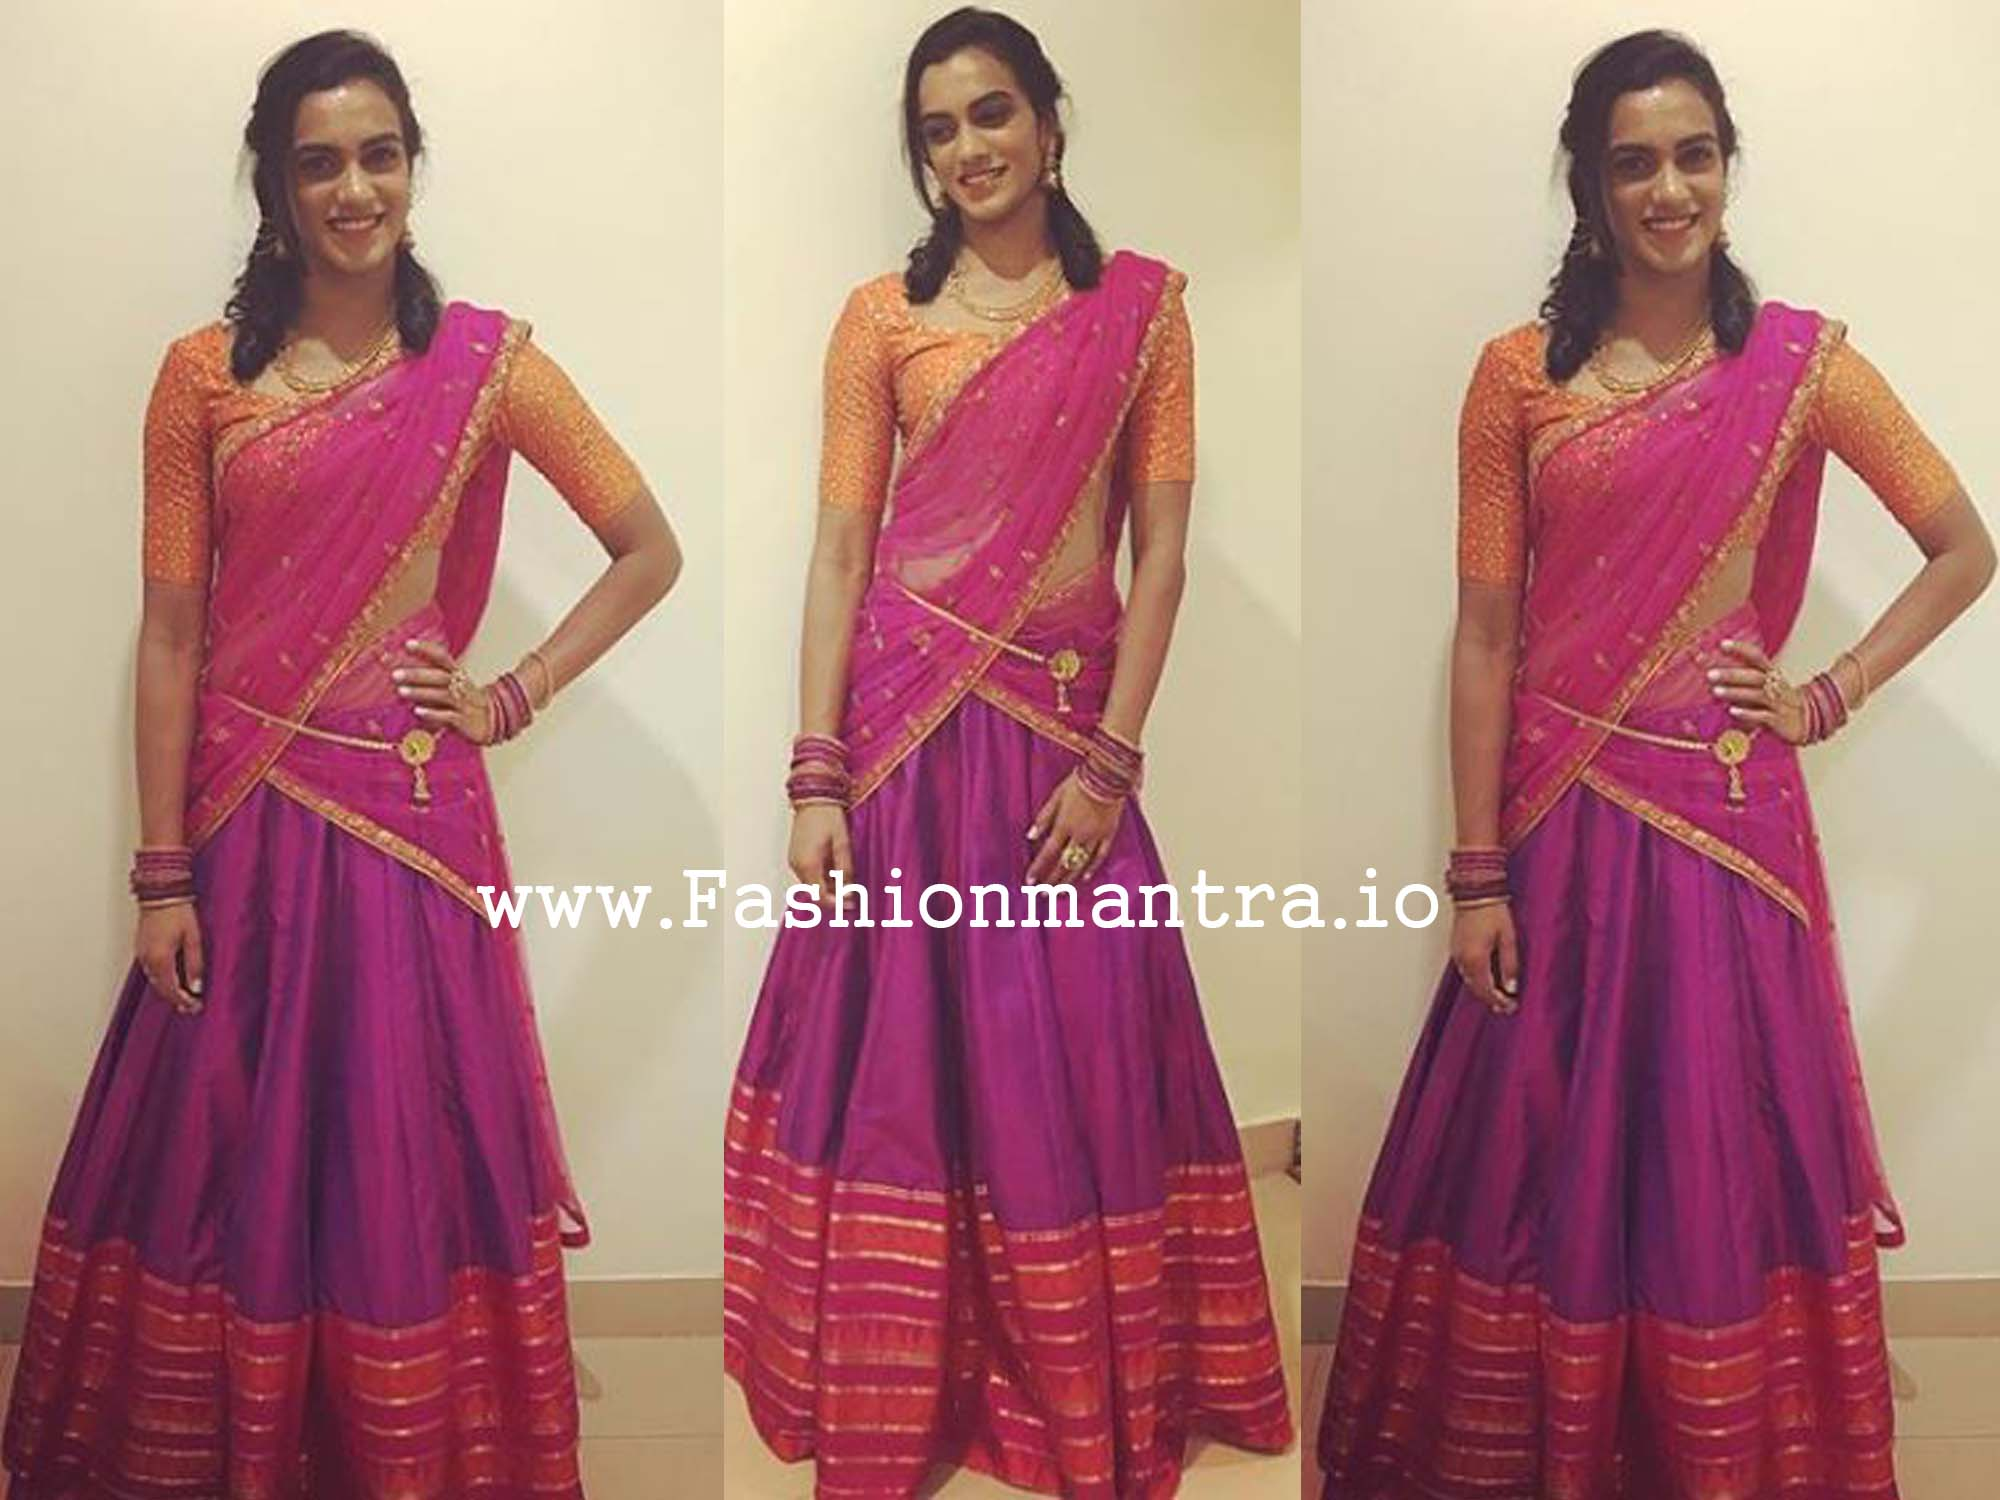 Pv sindhu in Traditional Half Saree